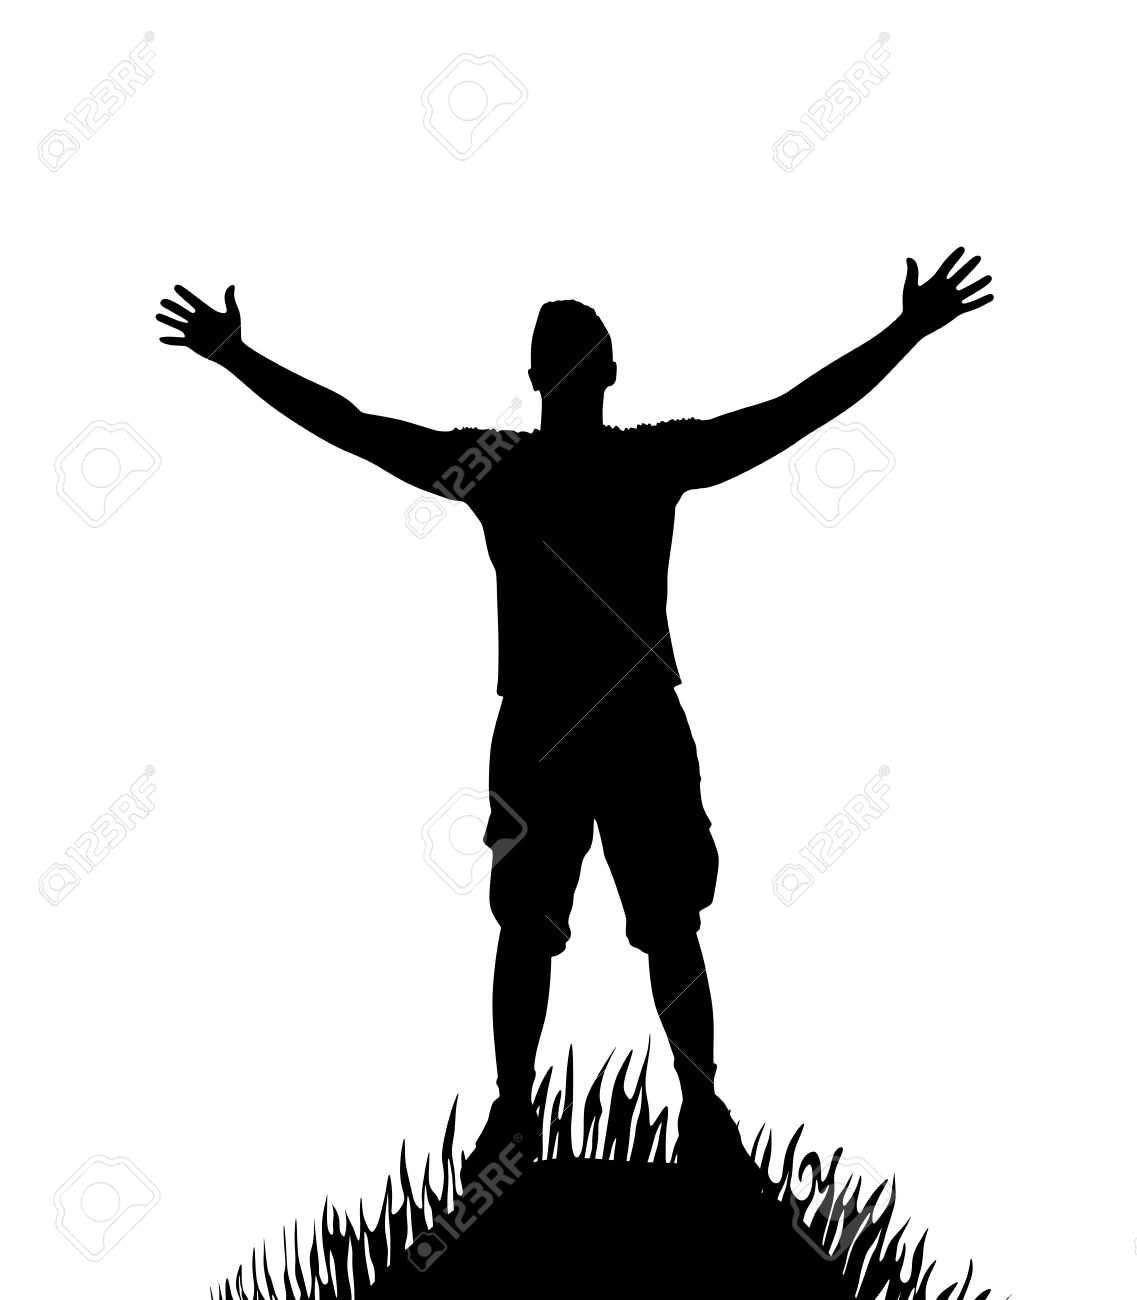 Silhouette Of Man With Open Arms On Hill Stock Vector